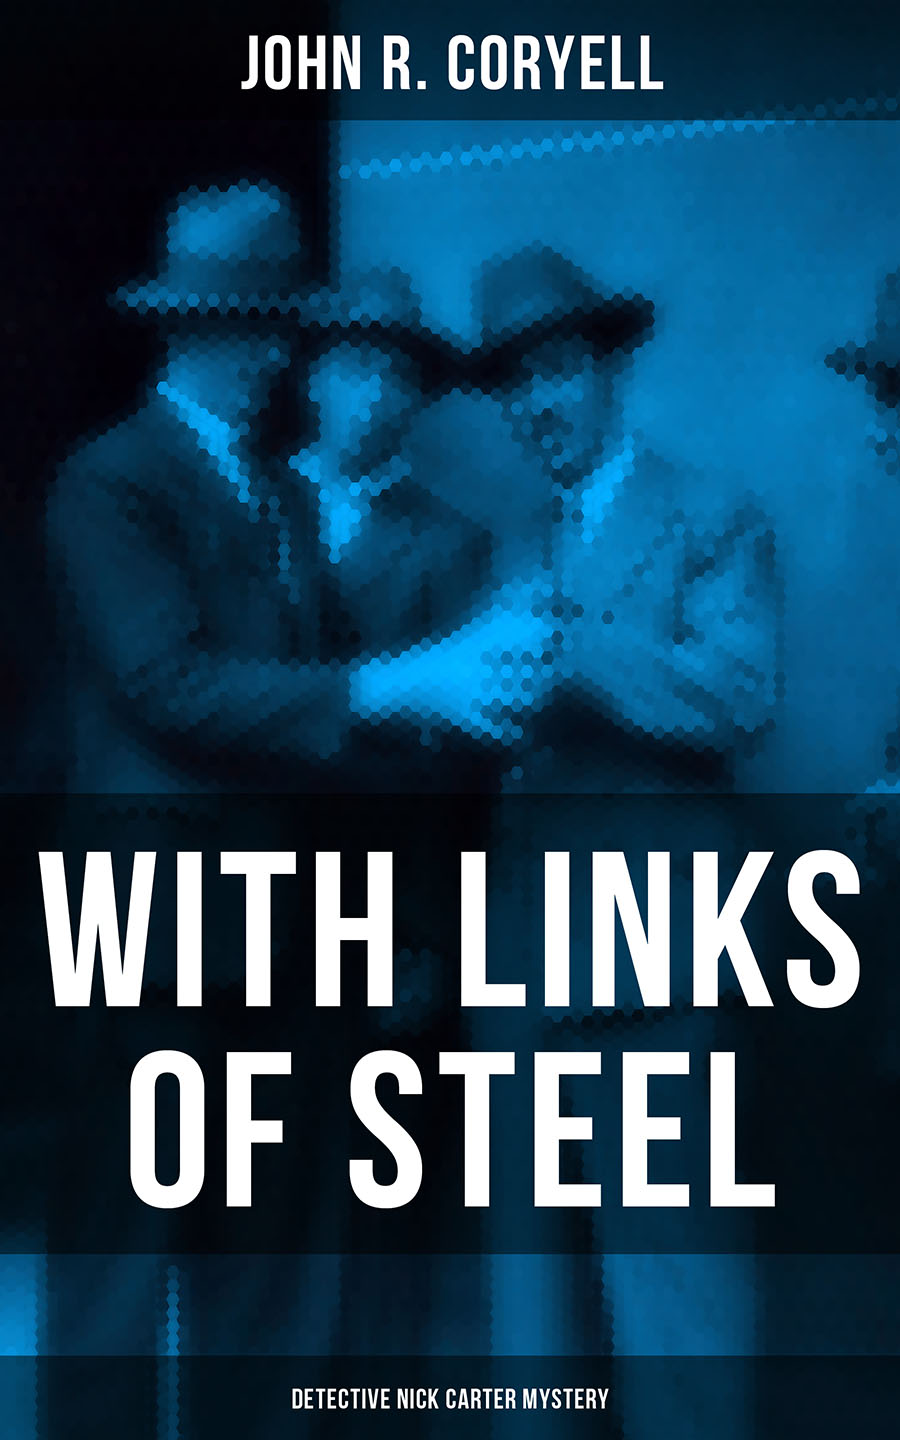 John R. Coryell WITH LINKS OF STEEL (Detective Nick Carter Mystery) john farris the corpse next door a detective sergeant randall mystery